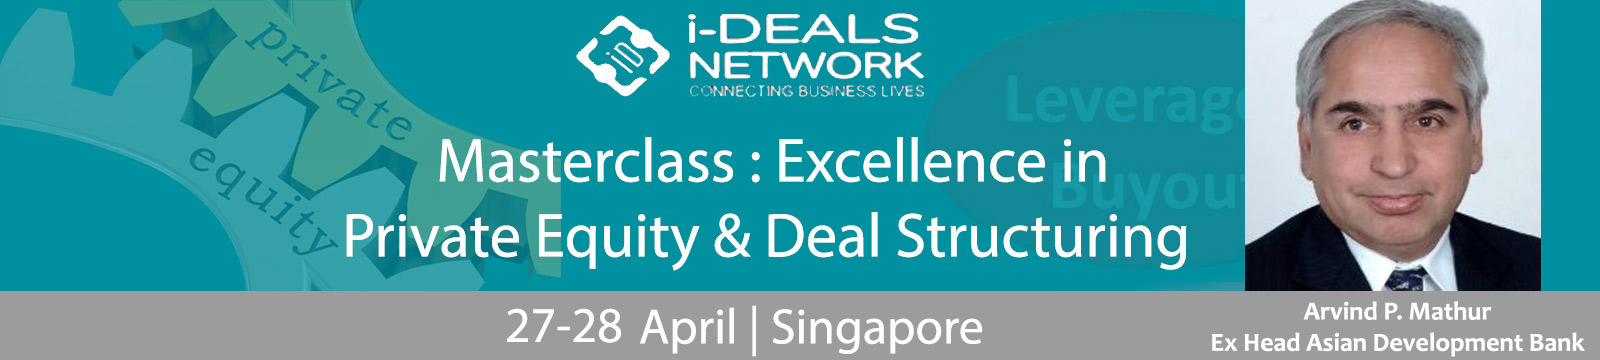 Masterclass Excellence in Private Equity and Deal Structuring